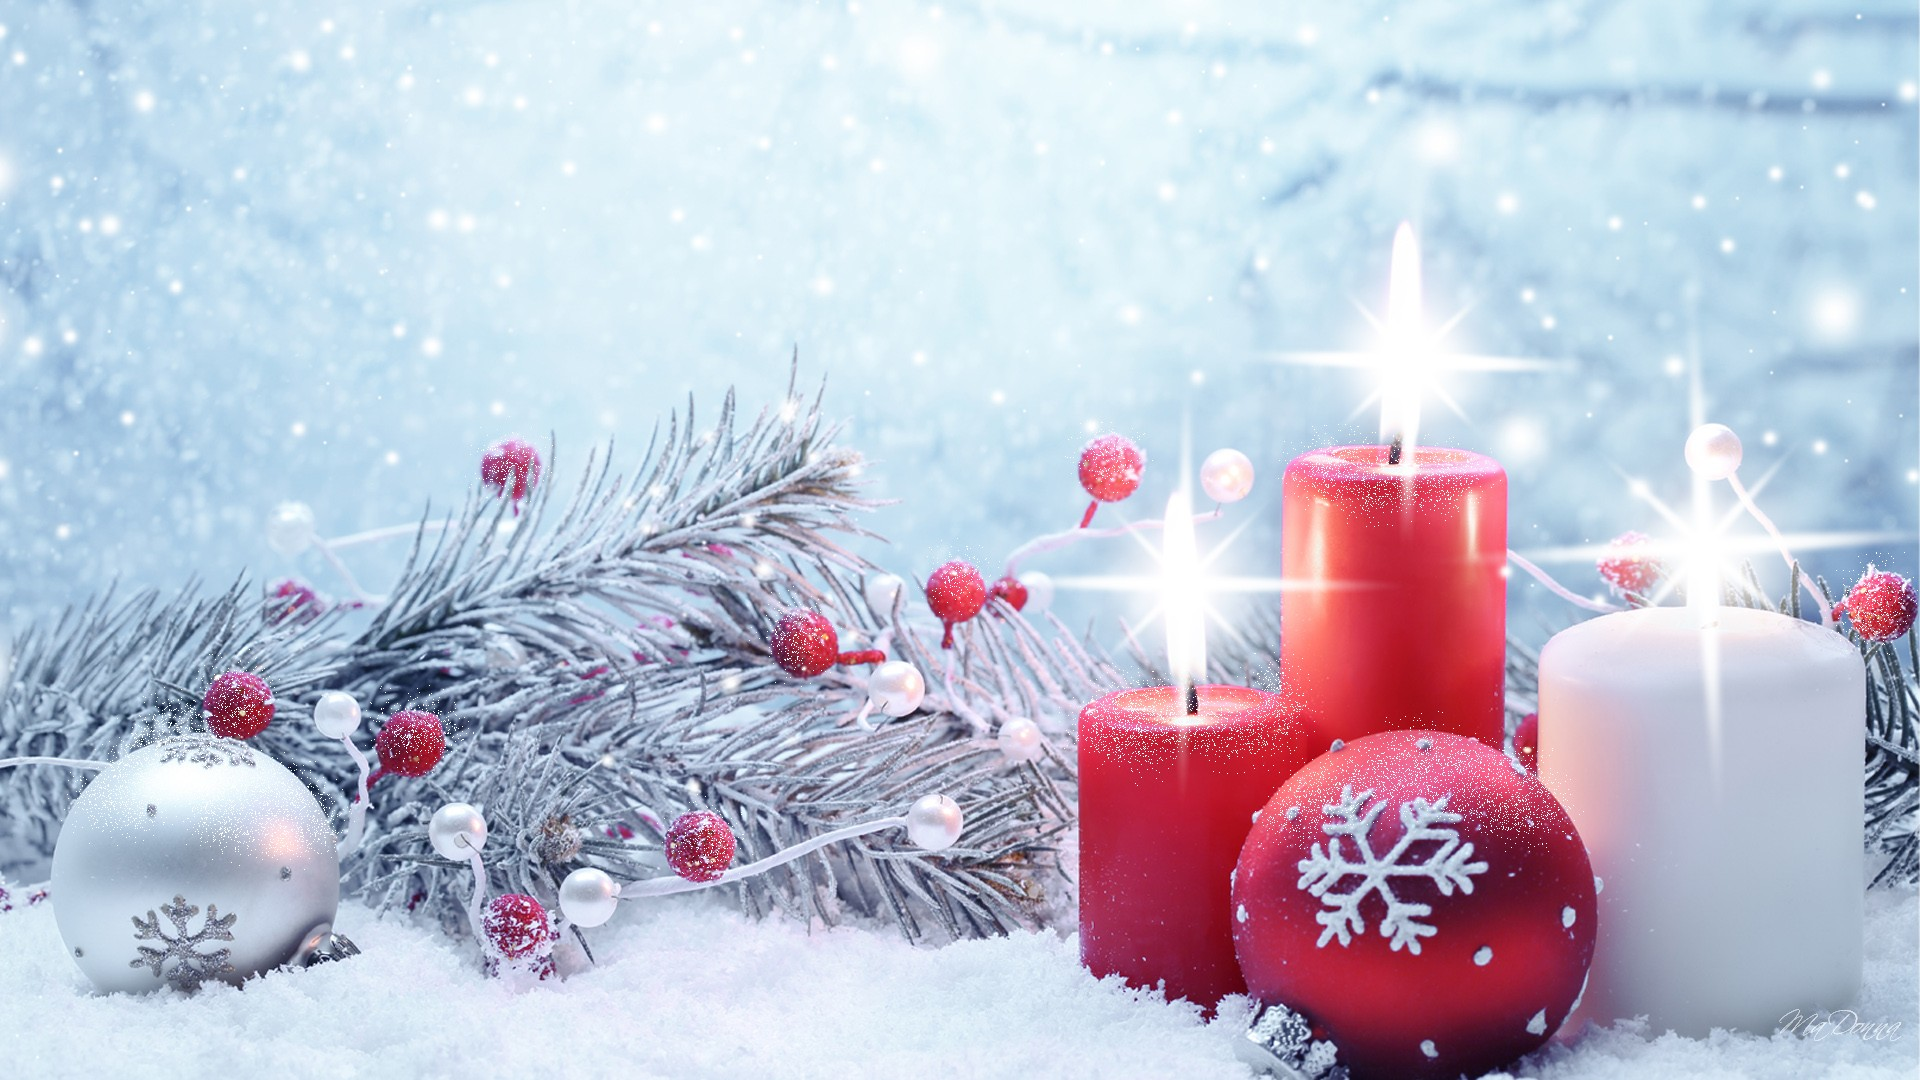 Download White Christmas Wallpaper Gallery